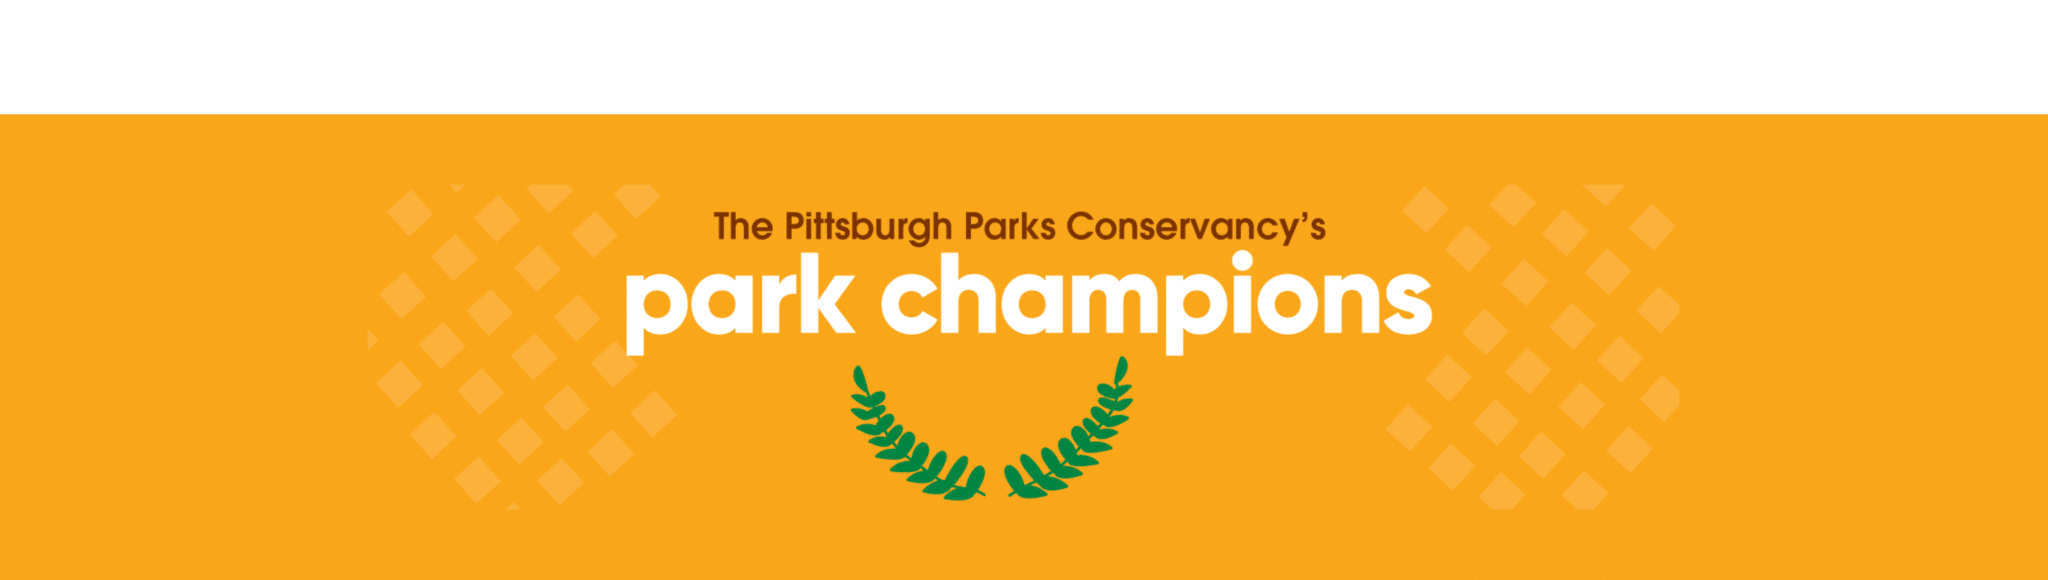 """Banner image stating """"The Pittsburgh Parks Conservancy's Park Champions"""""""